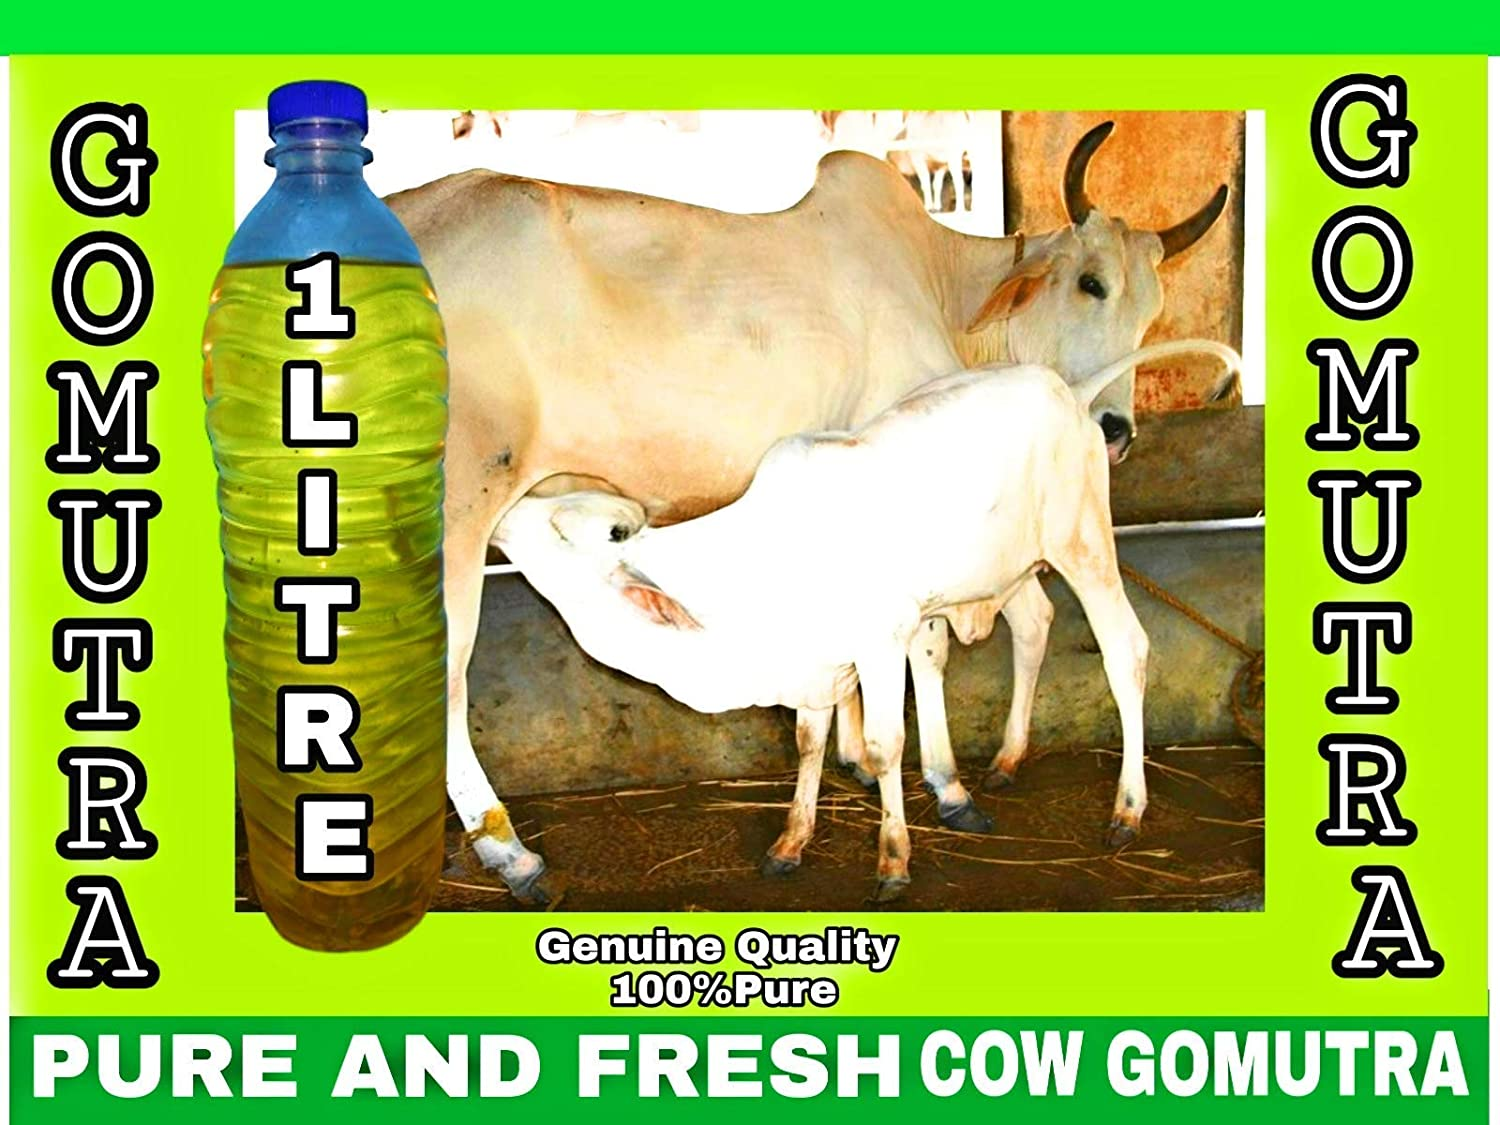 PURE AND FRESH COW URINE / GOMUTRA, 1Liter